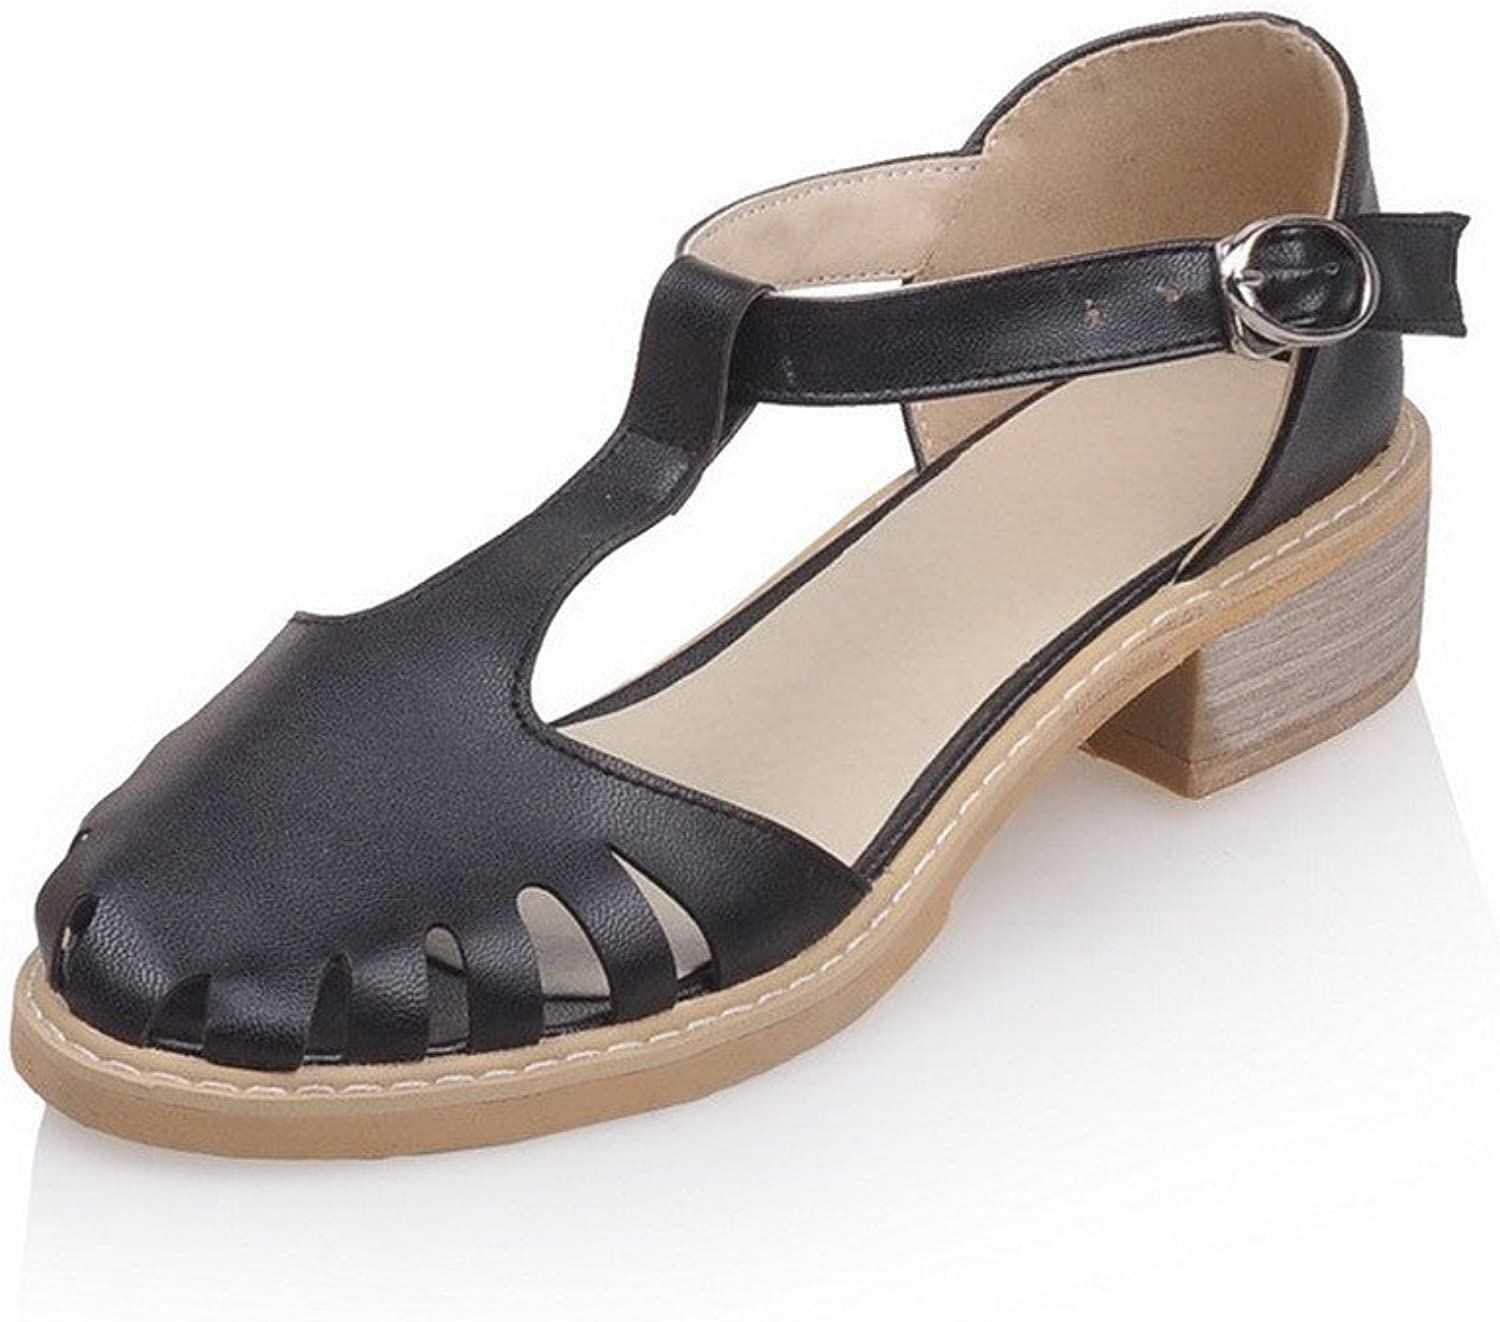 AmoonyFashion Women's Low-Heels Solid Buckle Soft Material Round-Toe Sandals